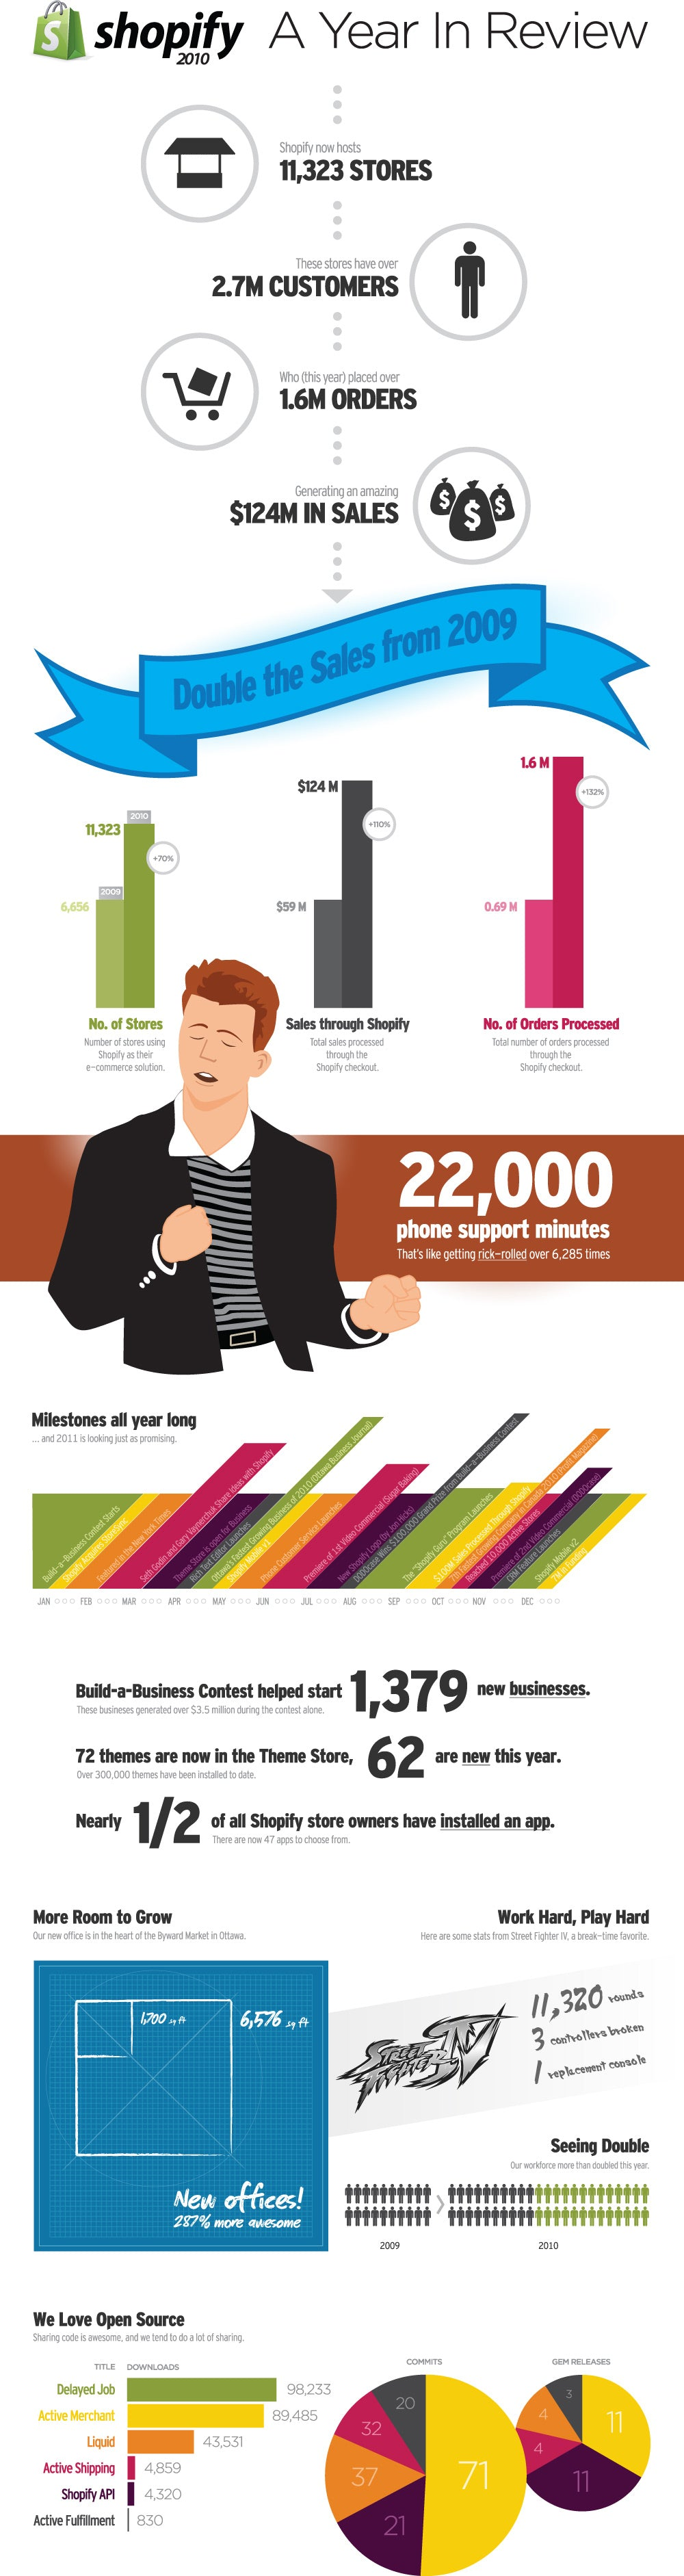 Shopify Year in Review 2010 Infographic